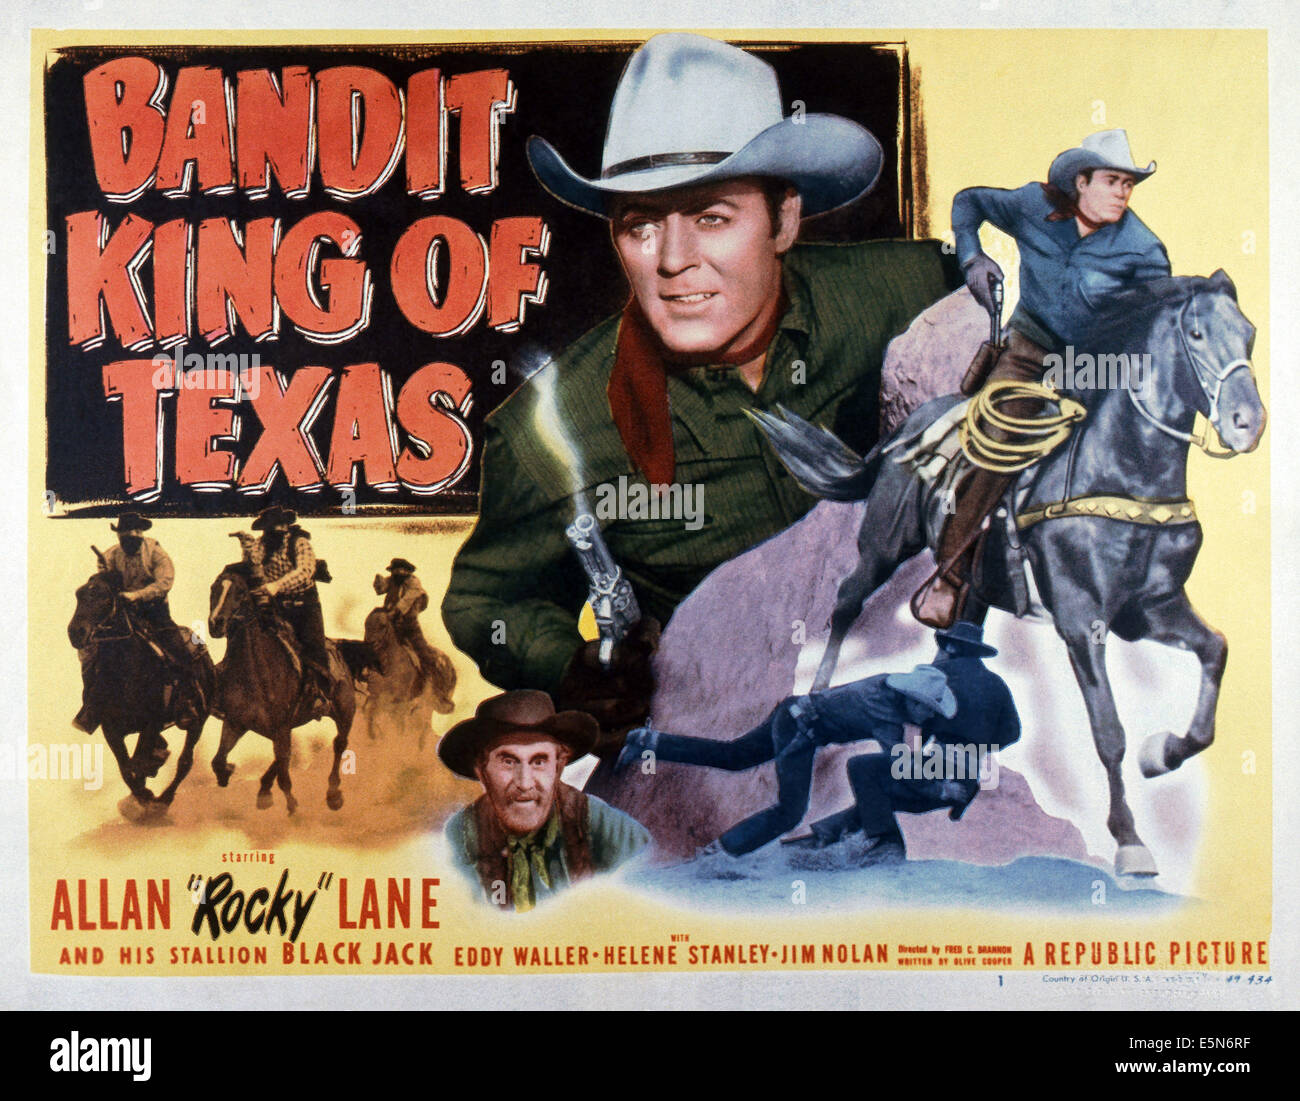 bandit-king-of-texas-eddy-waller-bottom-...E5N6RF.jpg